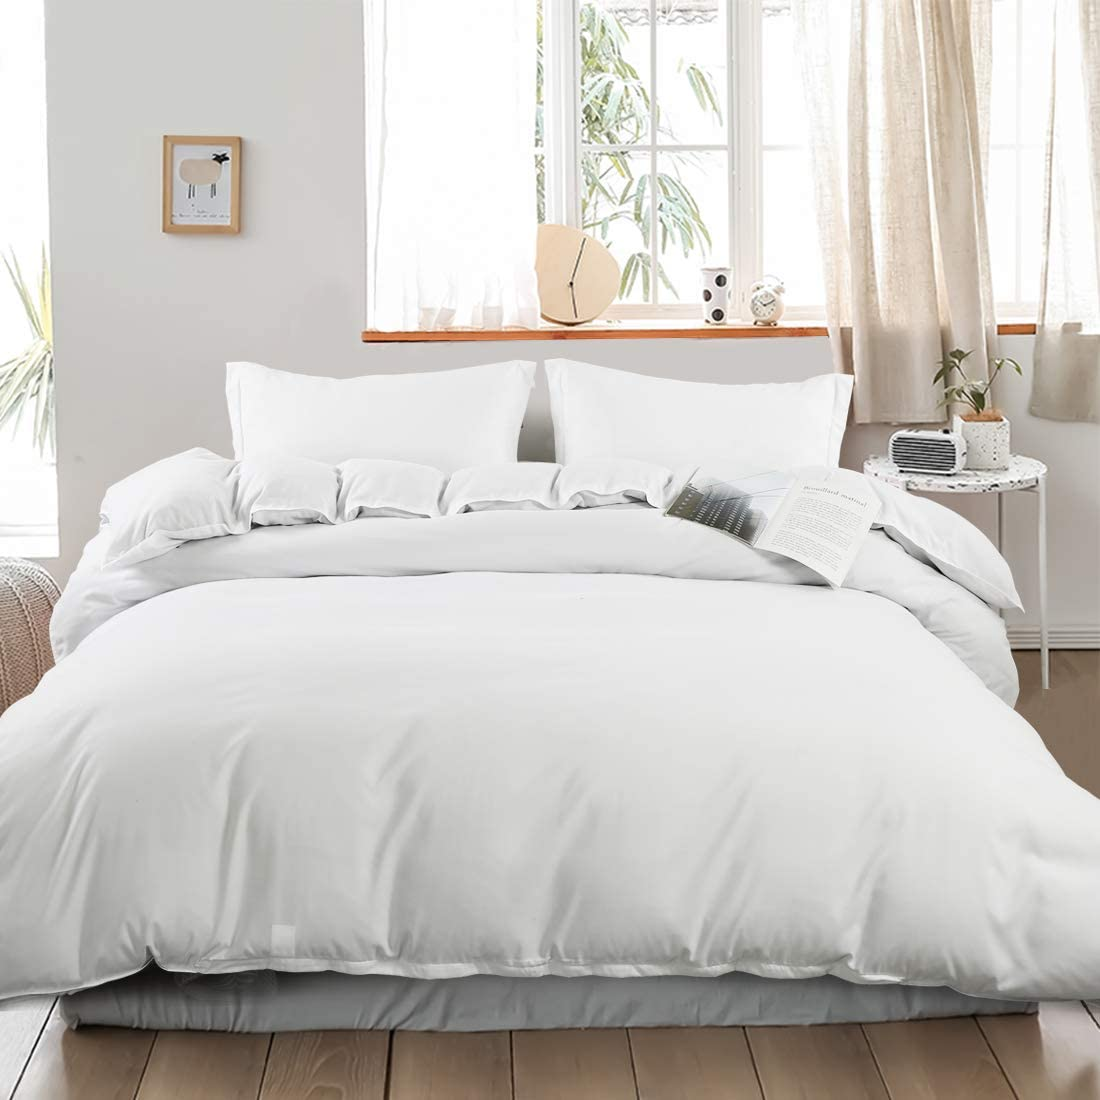 INGALIK 3-Piece Queen Duvet Cover Set Washed Microfiber Simple Style Bedding Set with Zipper Closure Soft and Easy Care Hotel Quality Duvet Cover Plus 2 Pillow Shams White